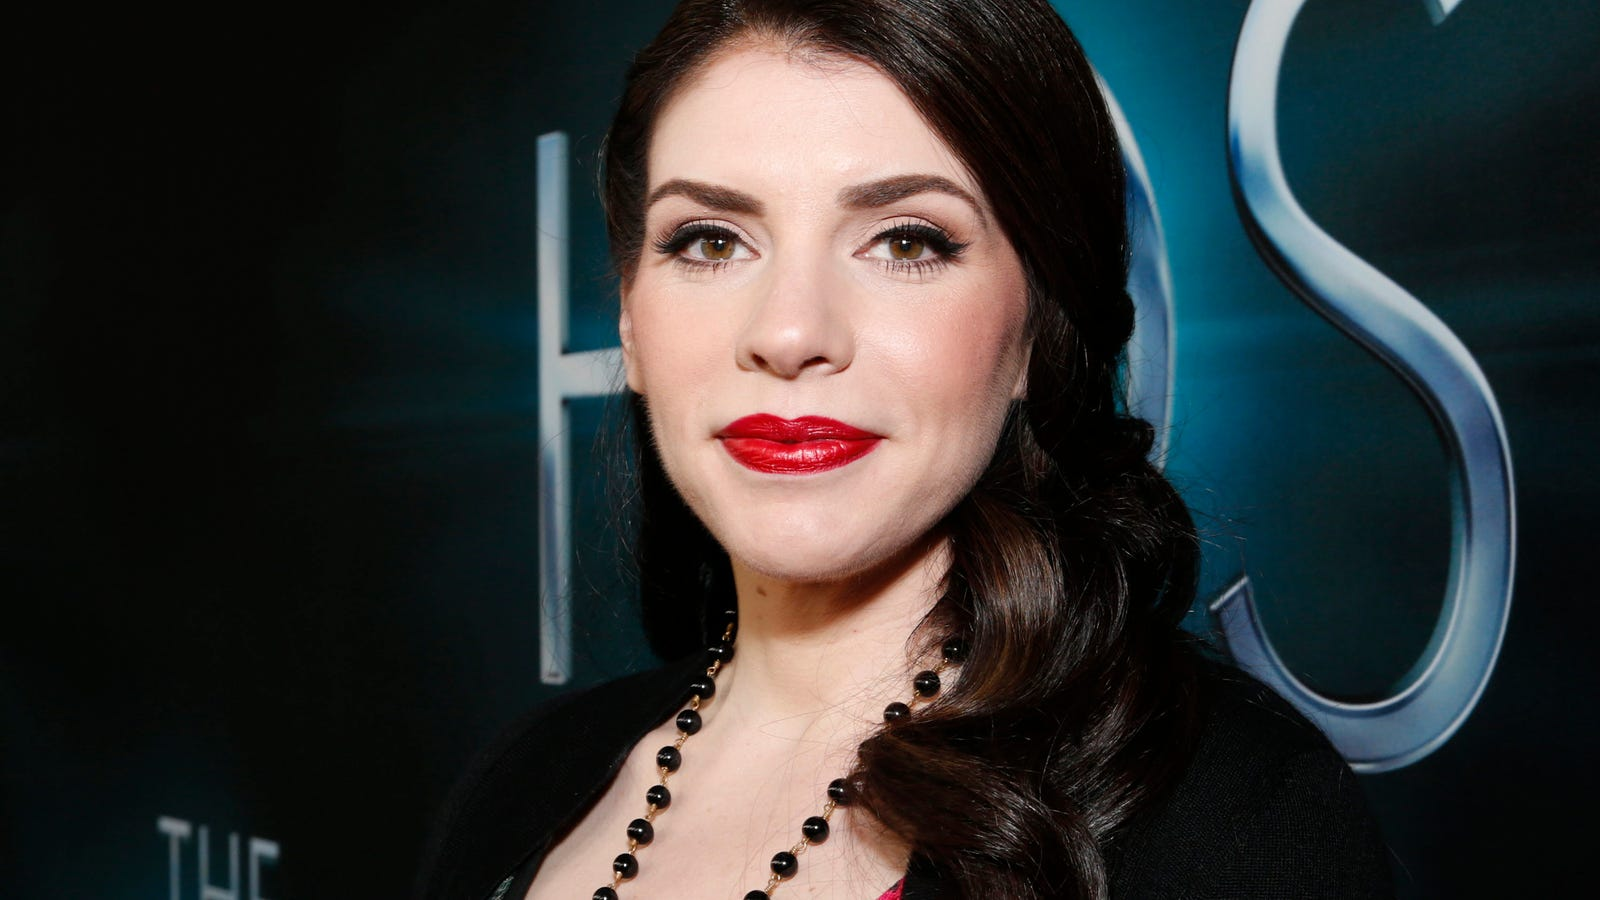 stephenie meyer's mormonism and the erotics Publishing professionals call it a phenomenon in 2008, little, brown sold 275 million copies of stephenie meyer's four vampire novels the twilight movie grossed $191 million in domestic box office sales and meyer's adult novel, the host, sold an additional million copies.